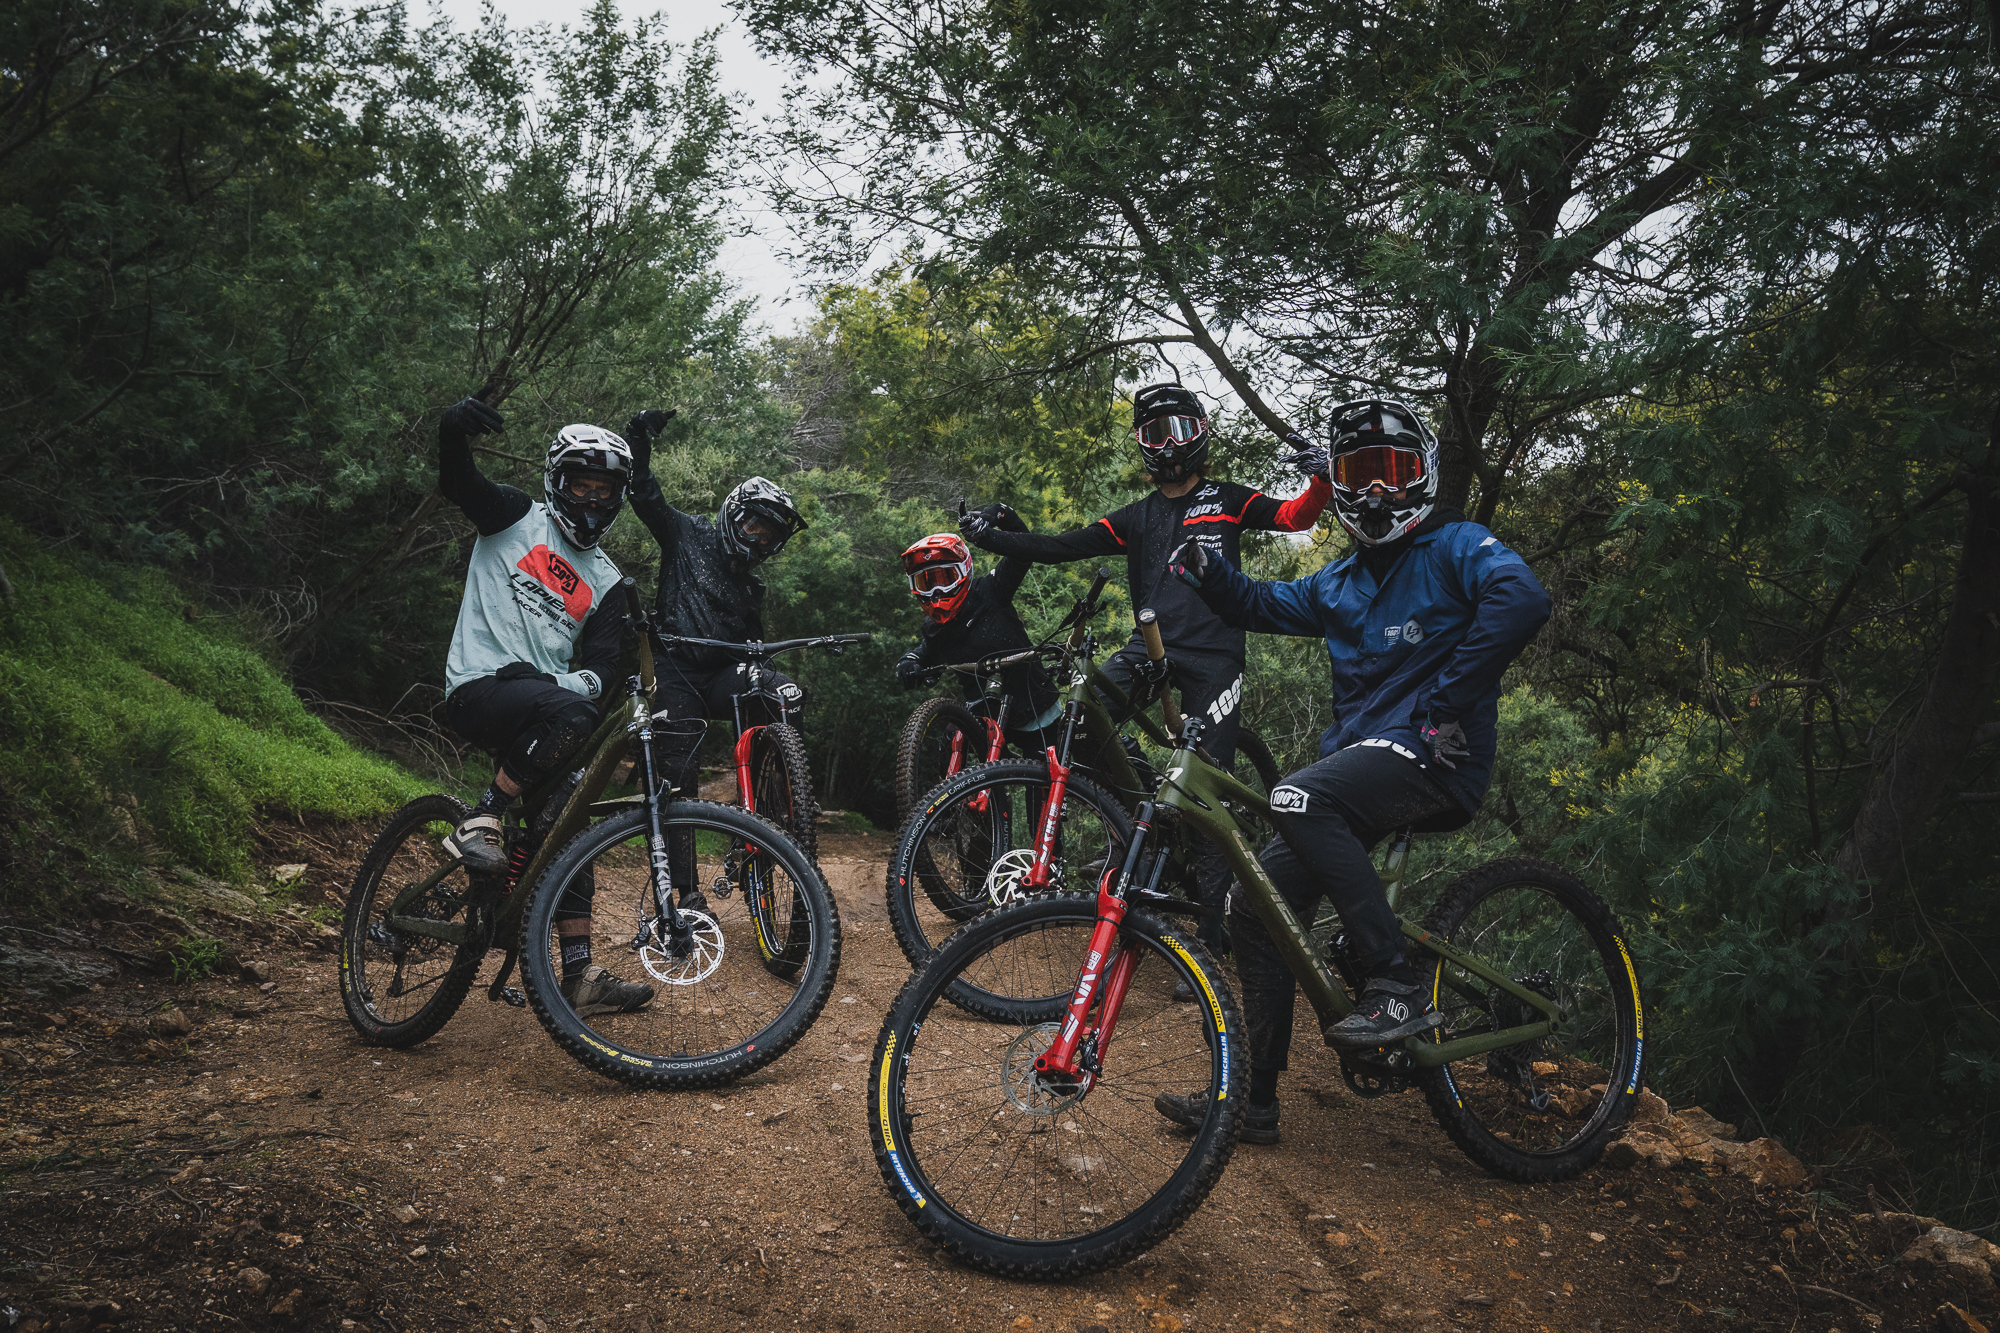 Lapierre Team Camp 2021. Mandelieu, France Photo by Matt Wragg